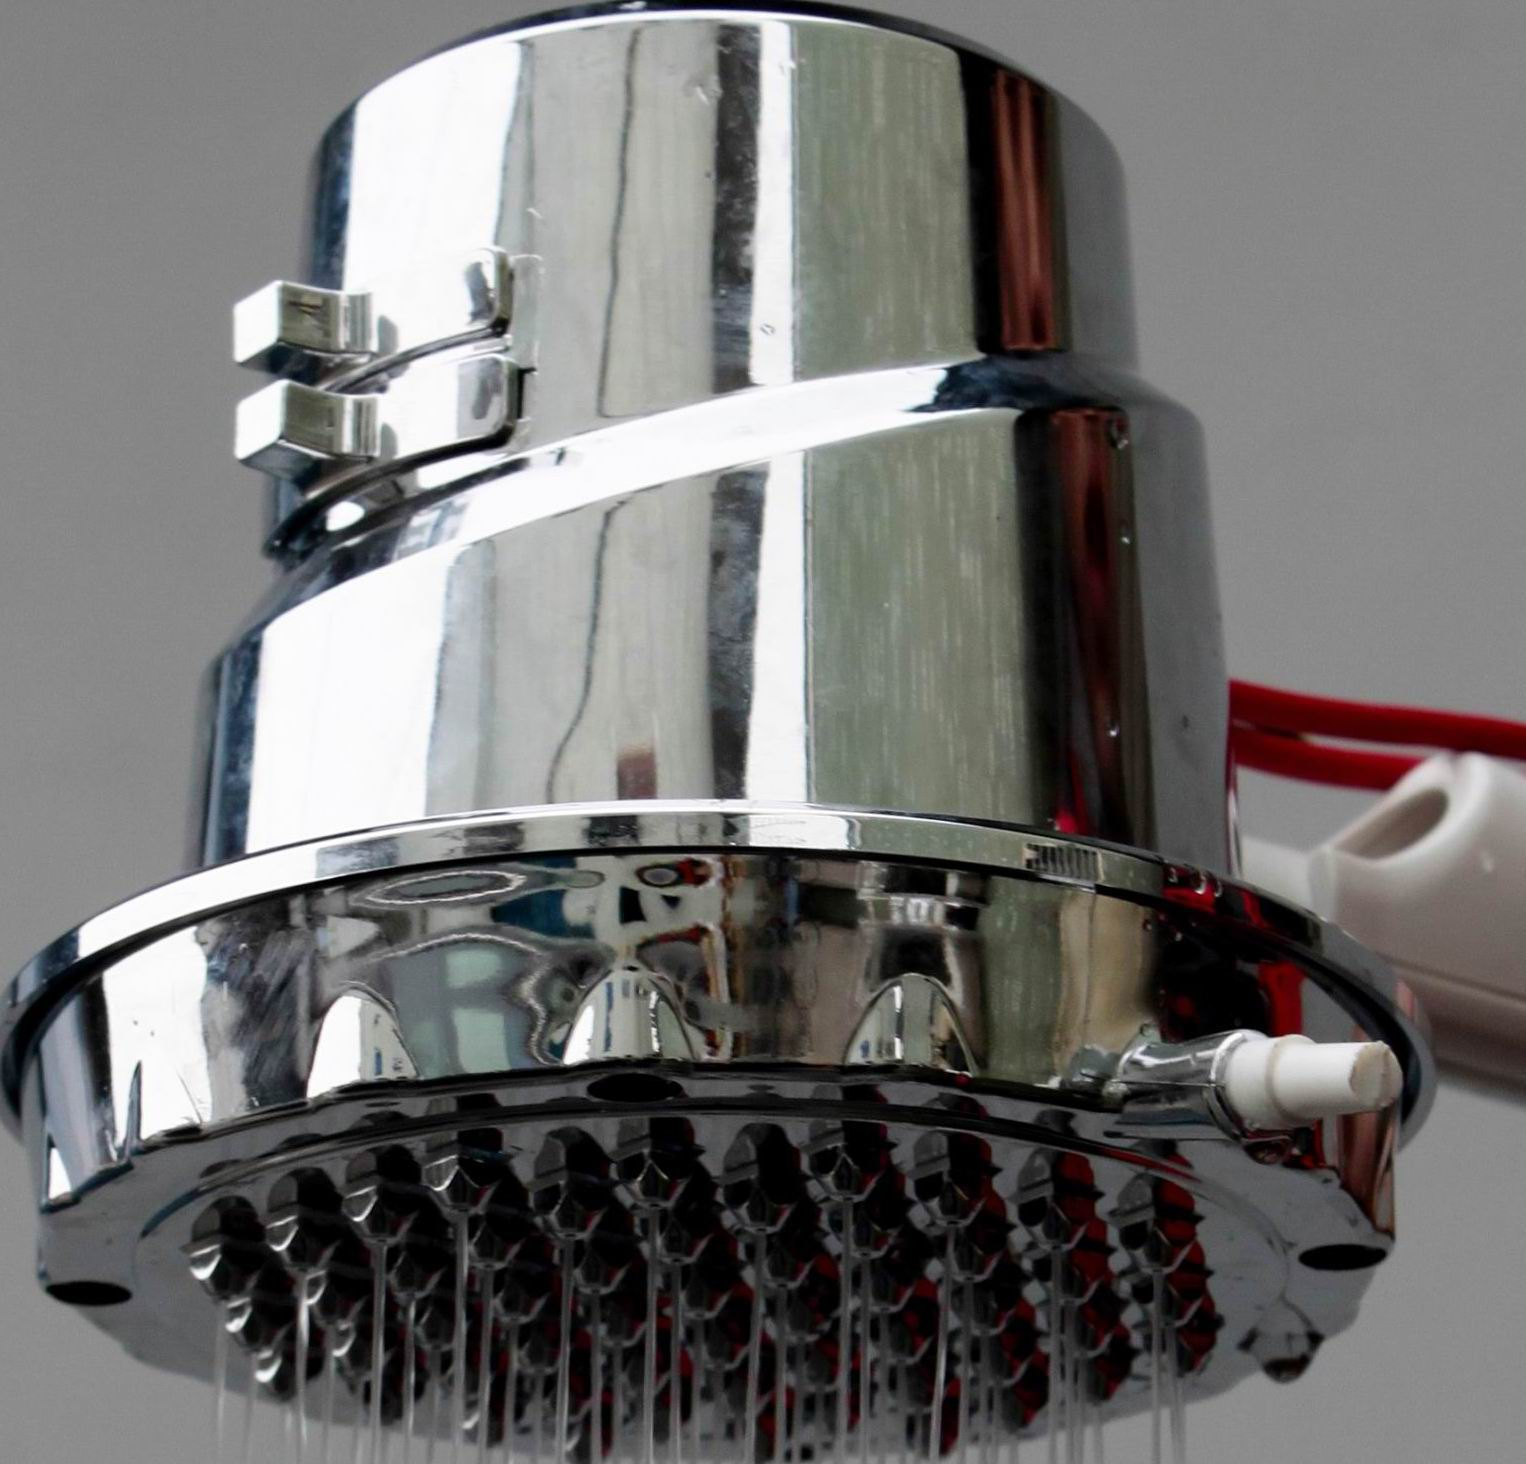 Bathroom water heater price - Electric Shower Heater Price Electric Shower Heater Price Suppliers And At Alibabacom